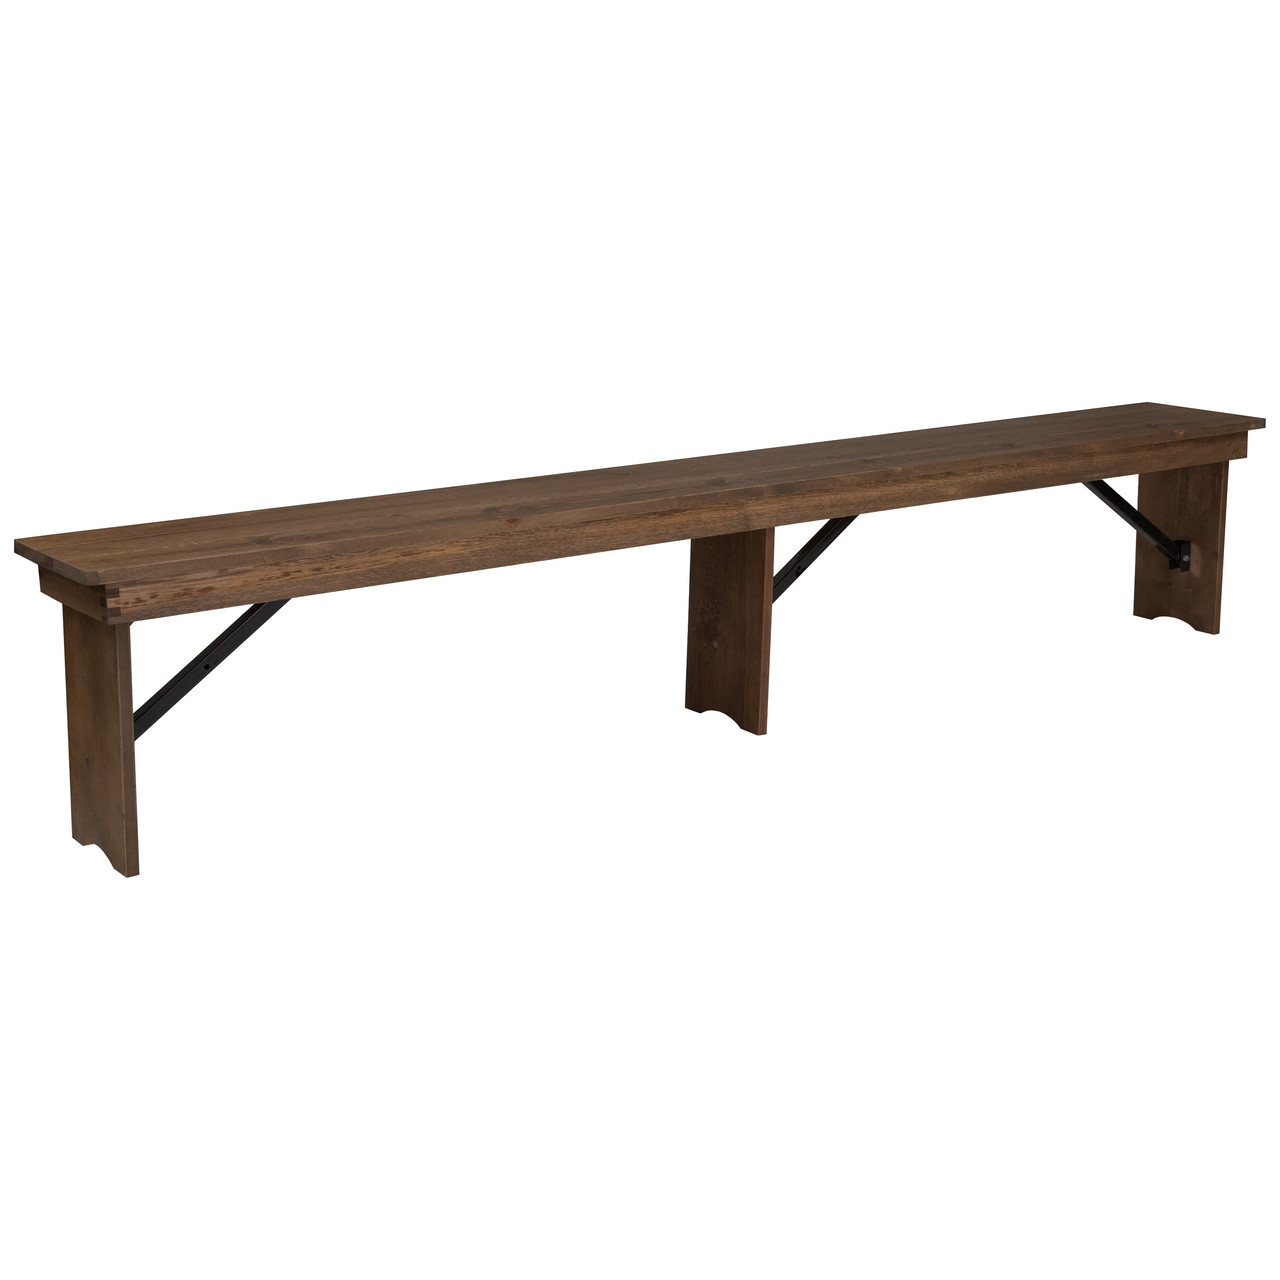 Wooden Bench Table Advantage Barn Wood Brown Farmhouse Table Bench 12 In X 96 In Ftb 1296 Ba